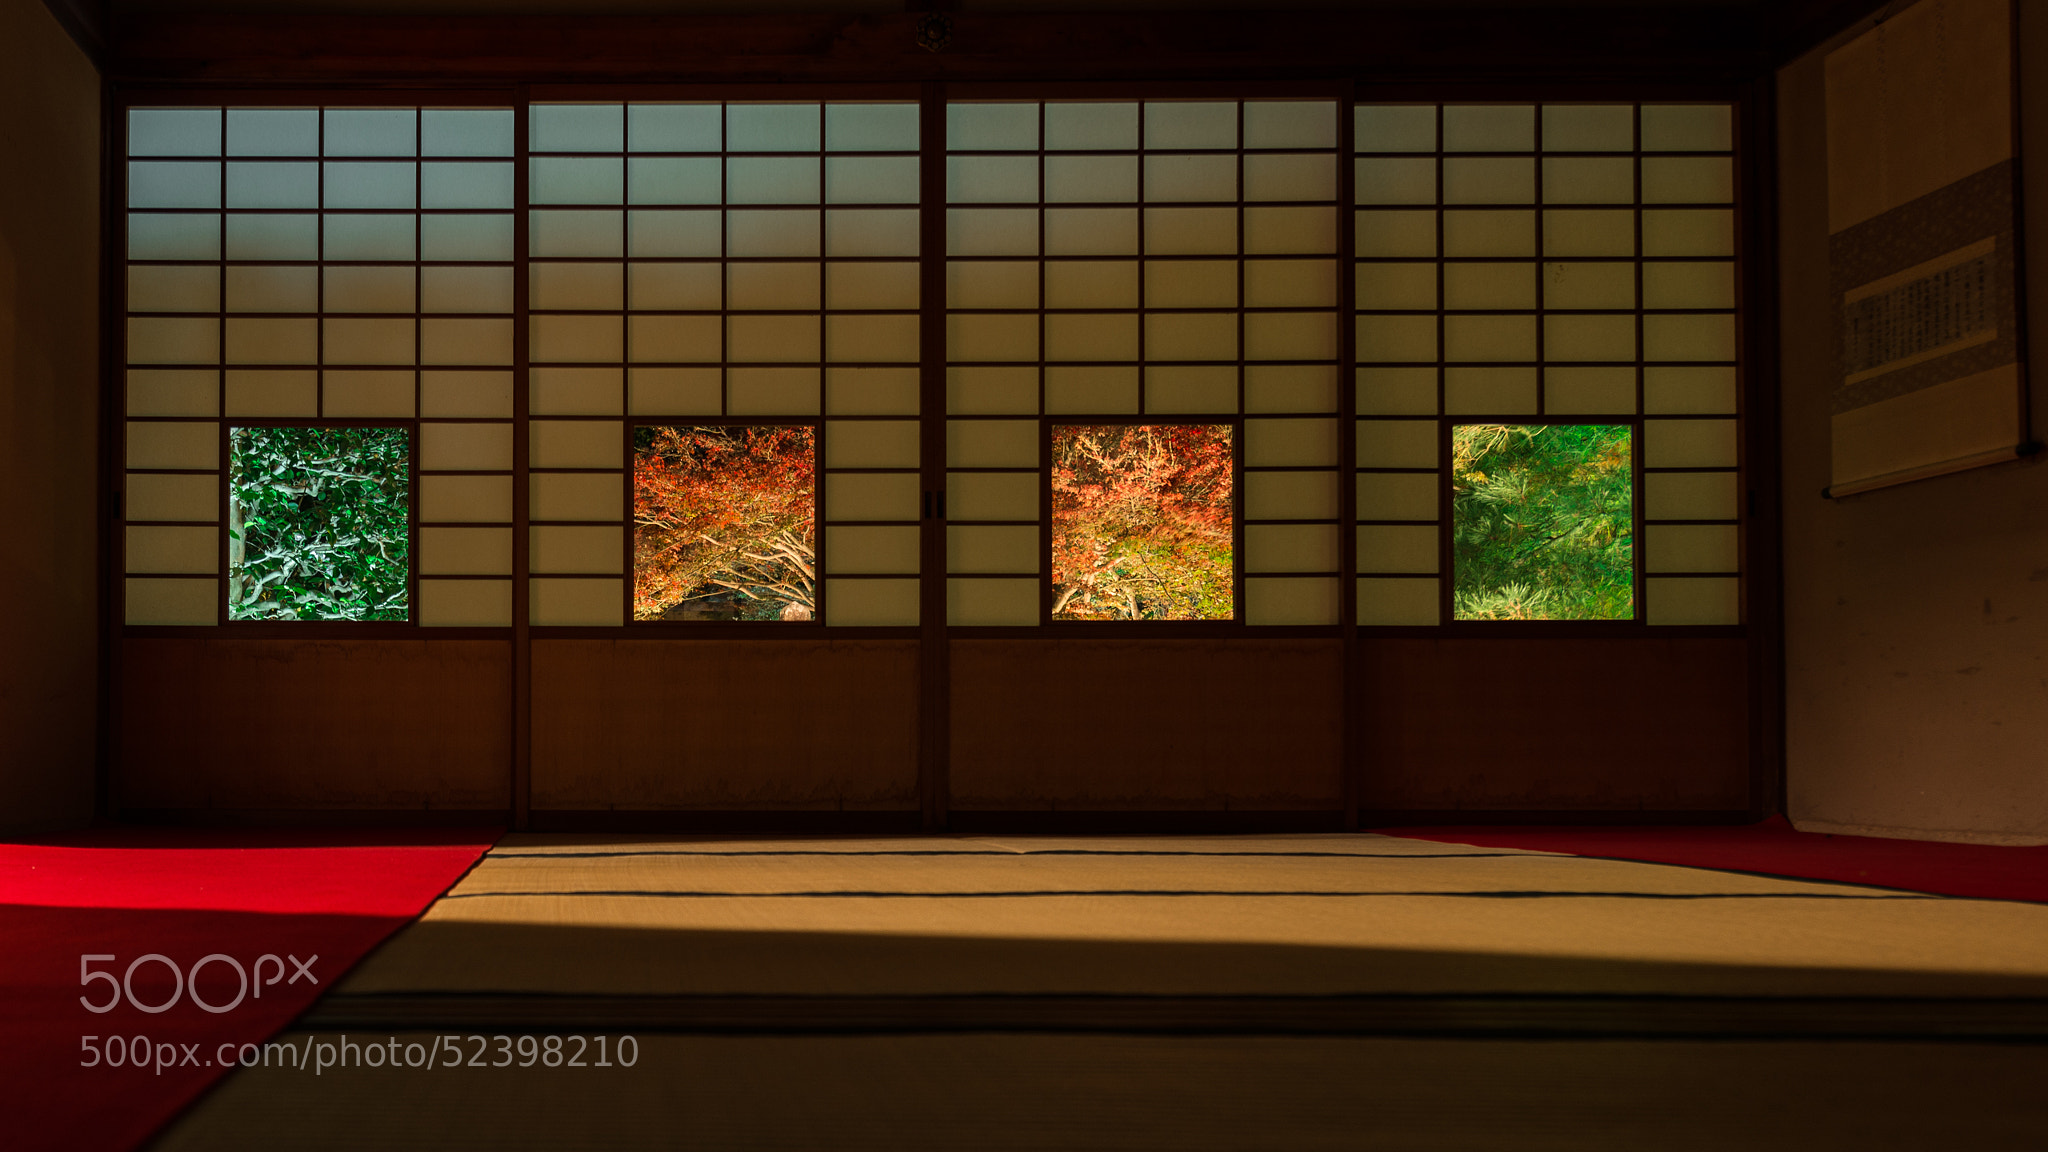 Photograph Four windows by Takahiro Bessho on 500px